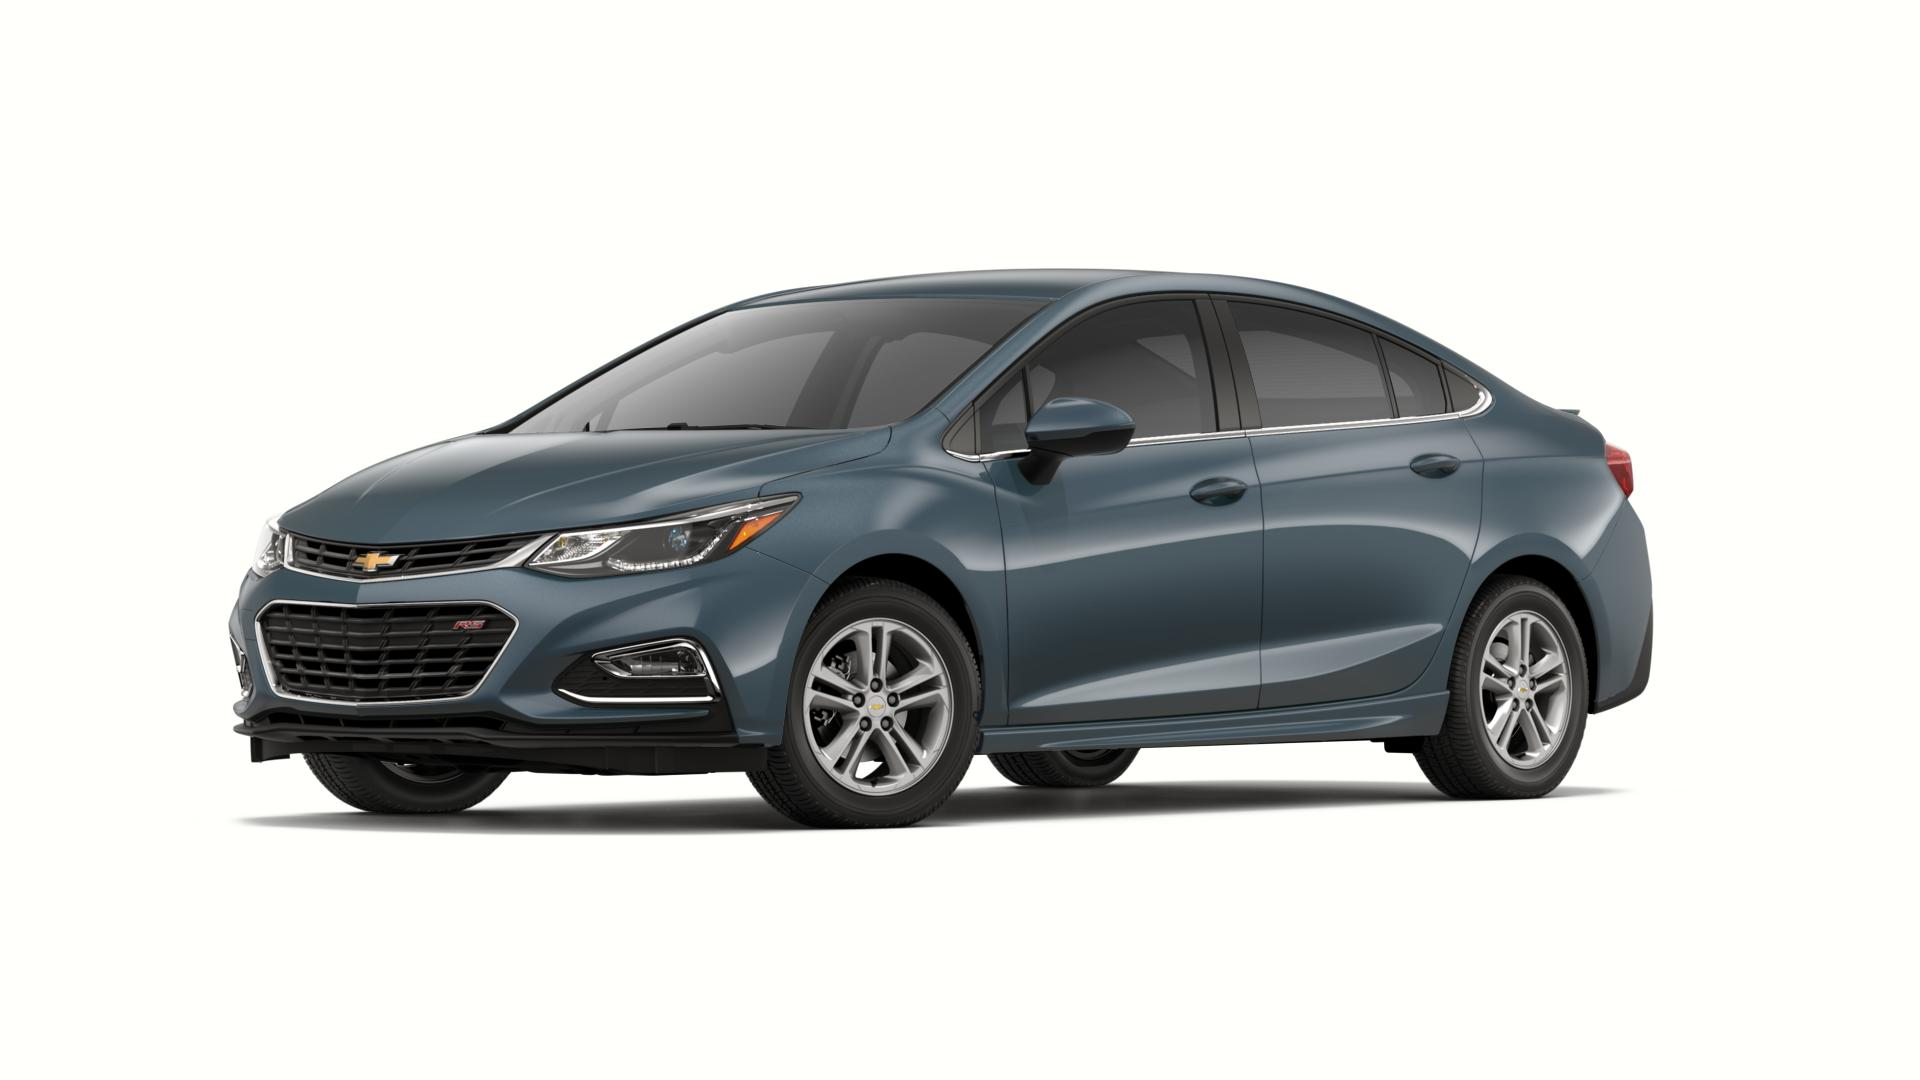 Gm Financial Lease >> 2018 Chevy Cruze | Specifications & Info | Commonwealth Chevrolet